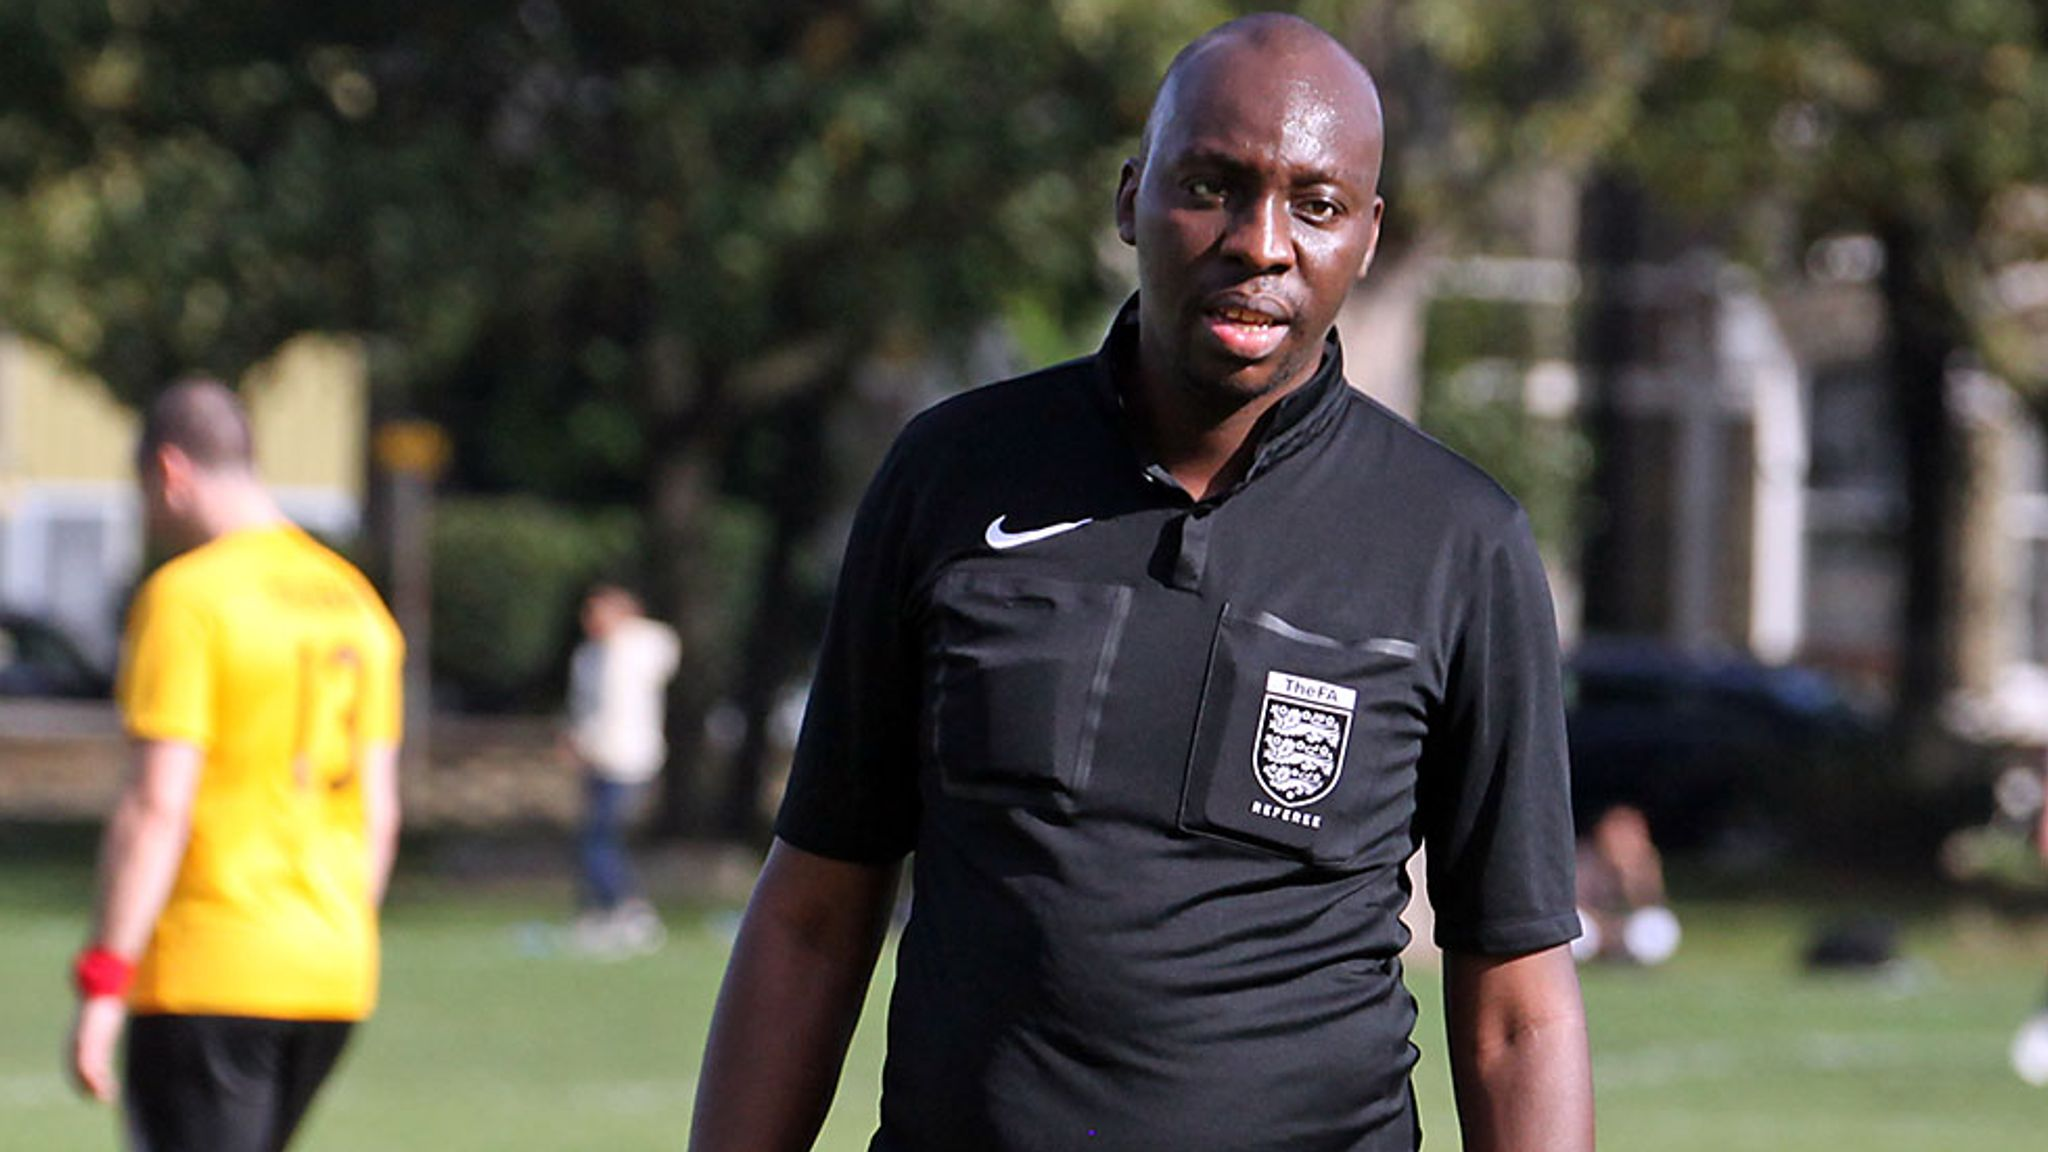 CONIFA referee seeks asylum after being publicly outed in Zimbabwe